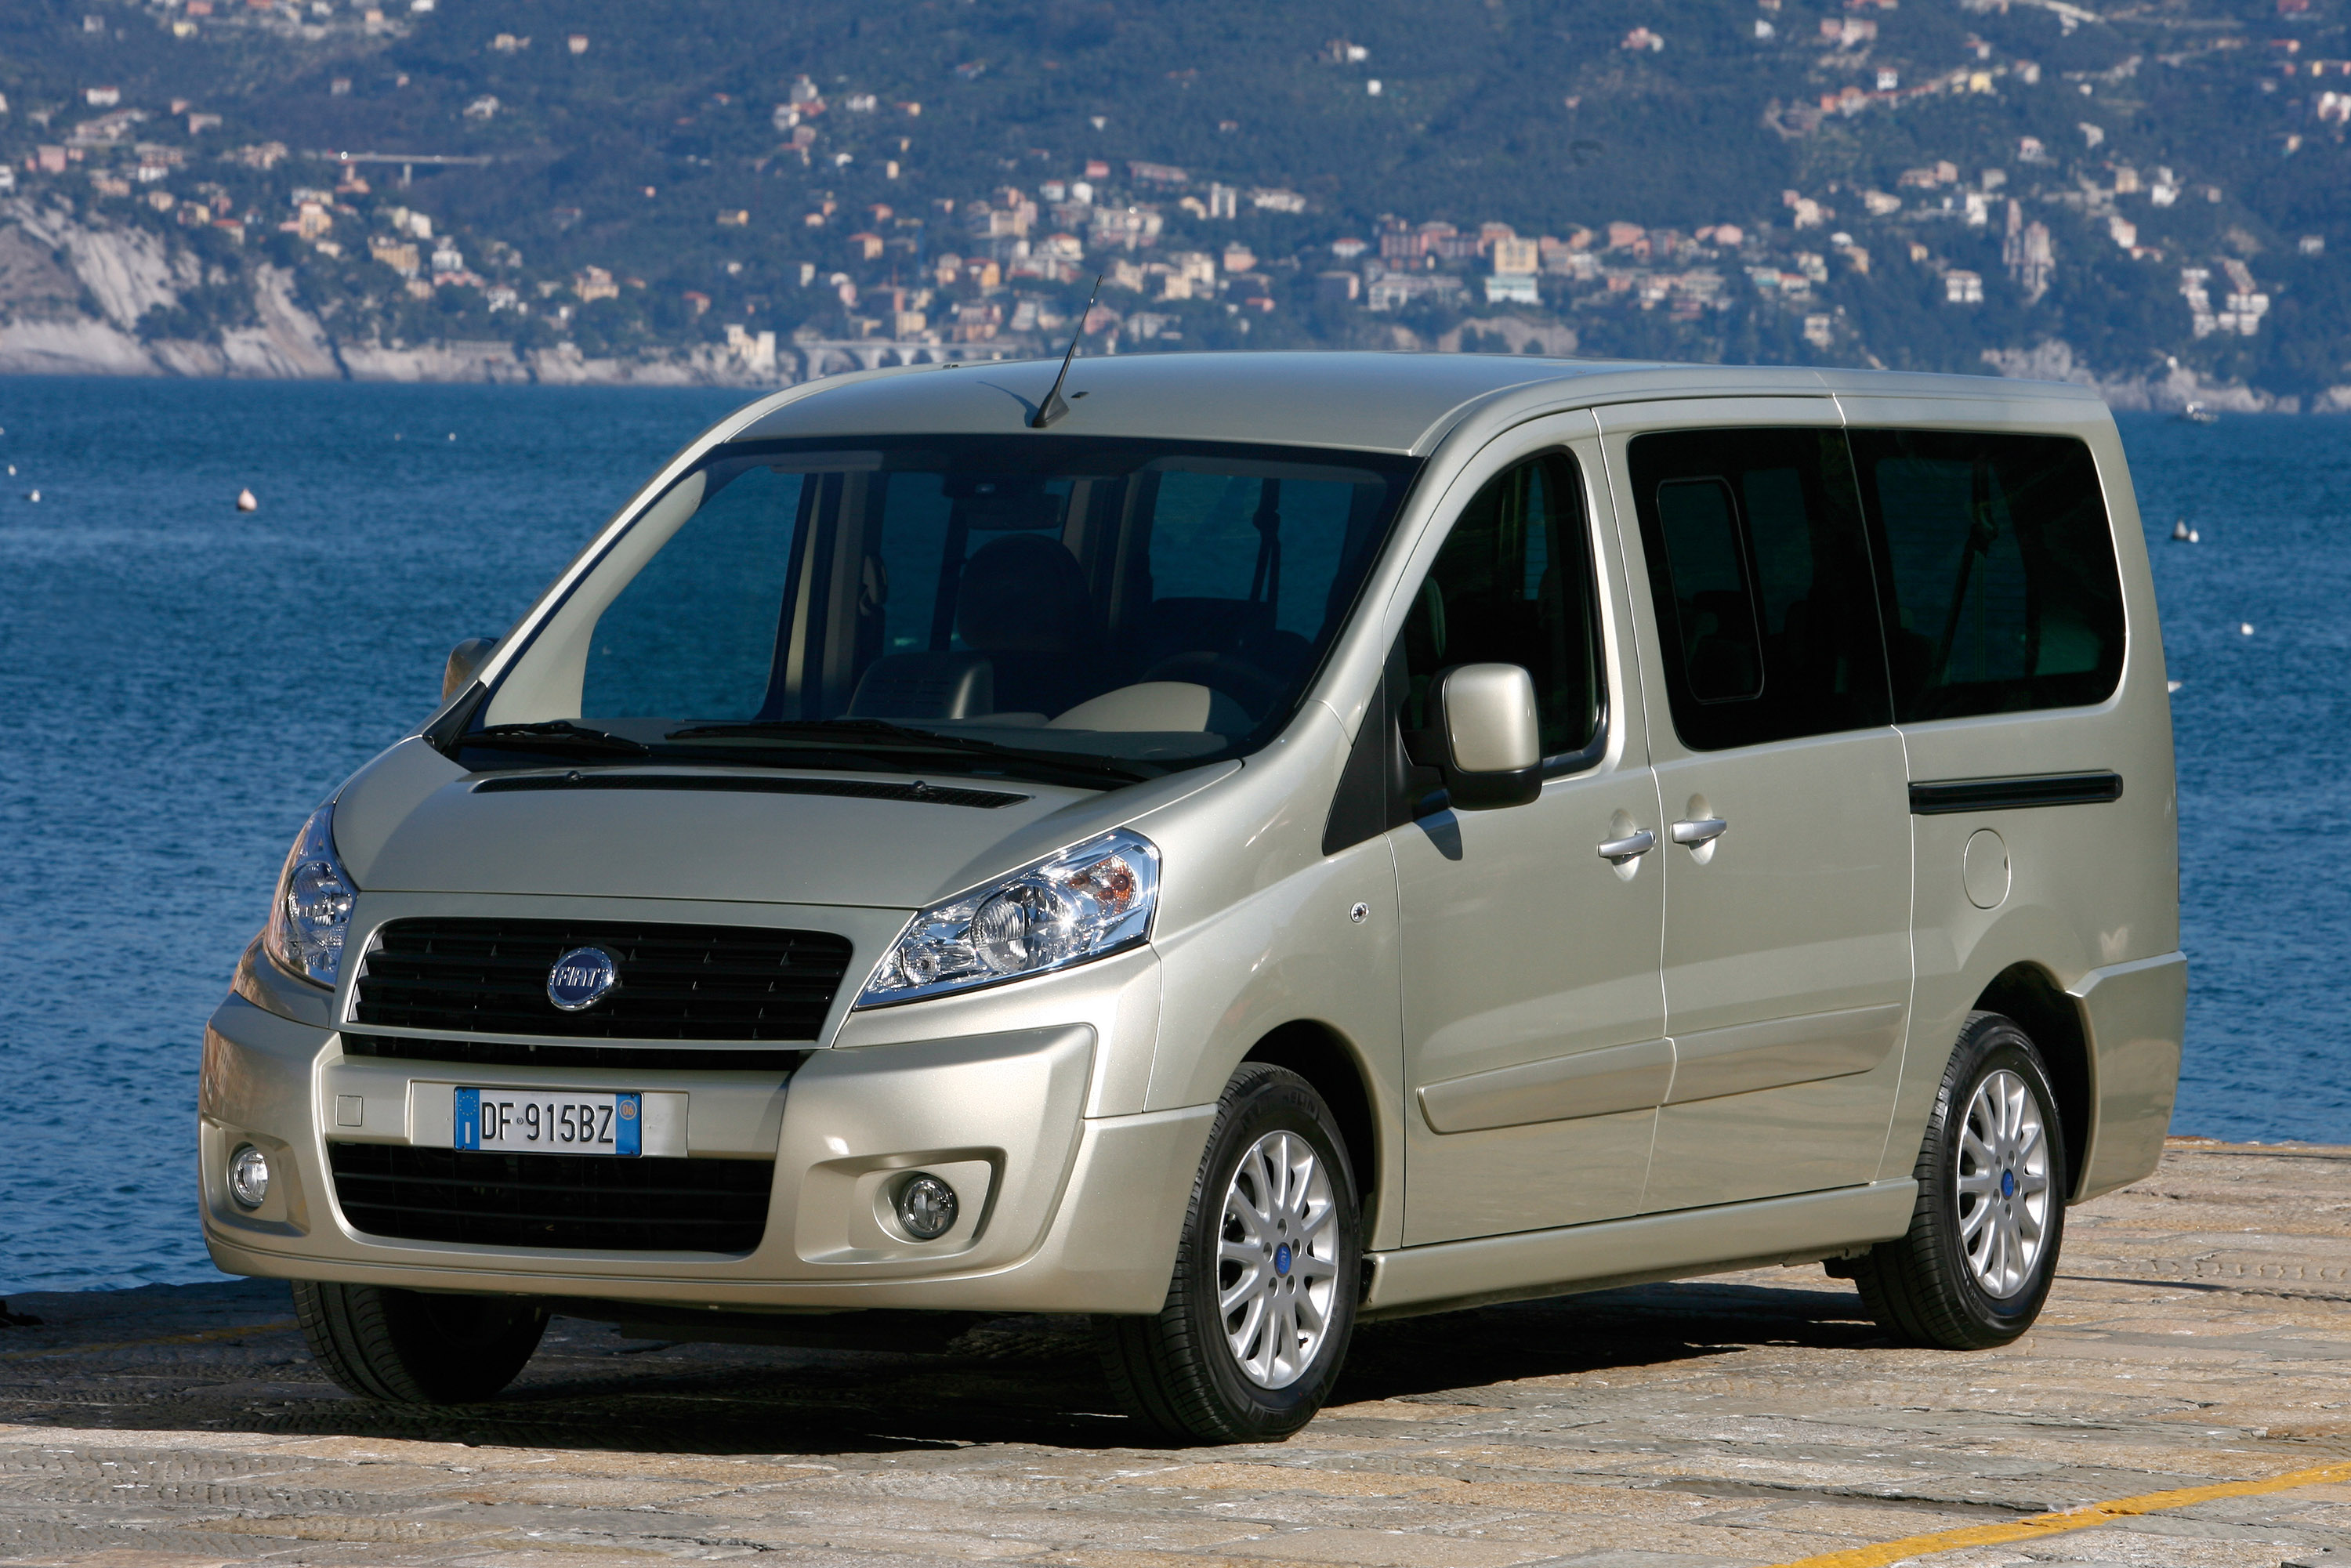 revealed sportivo sharp fiat professional img archives looking business vans tag trim ducato